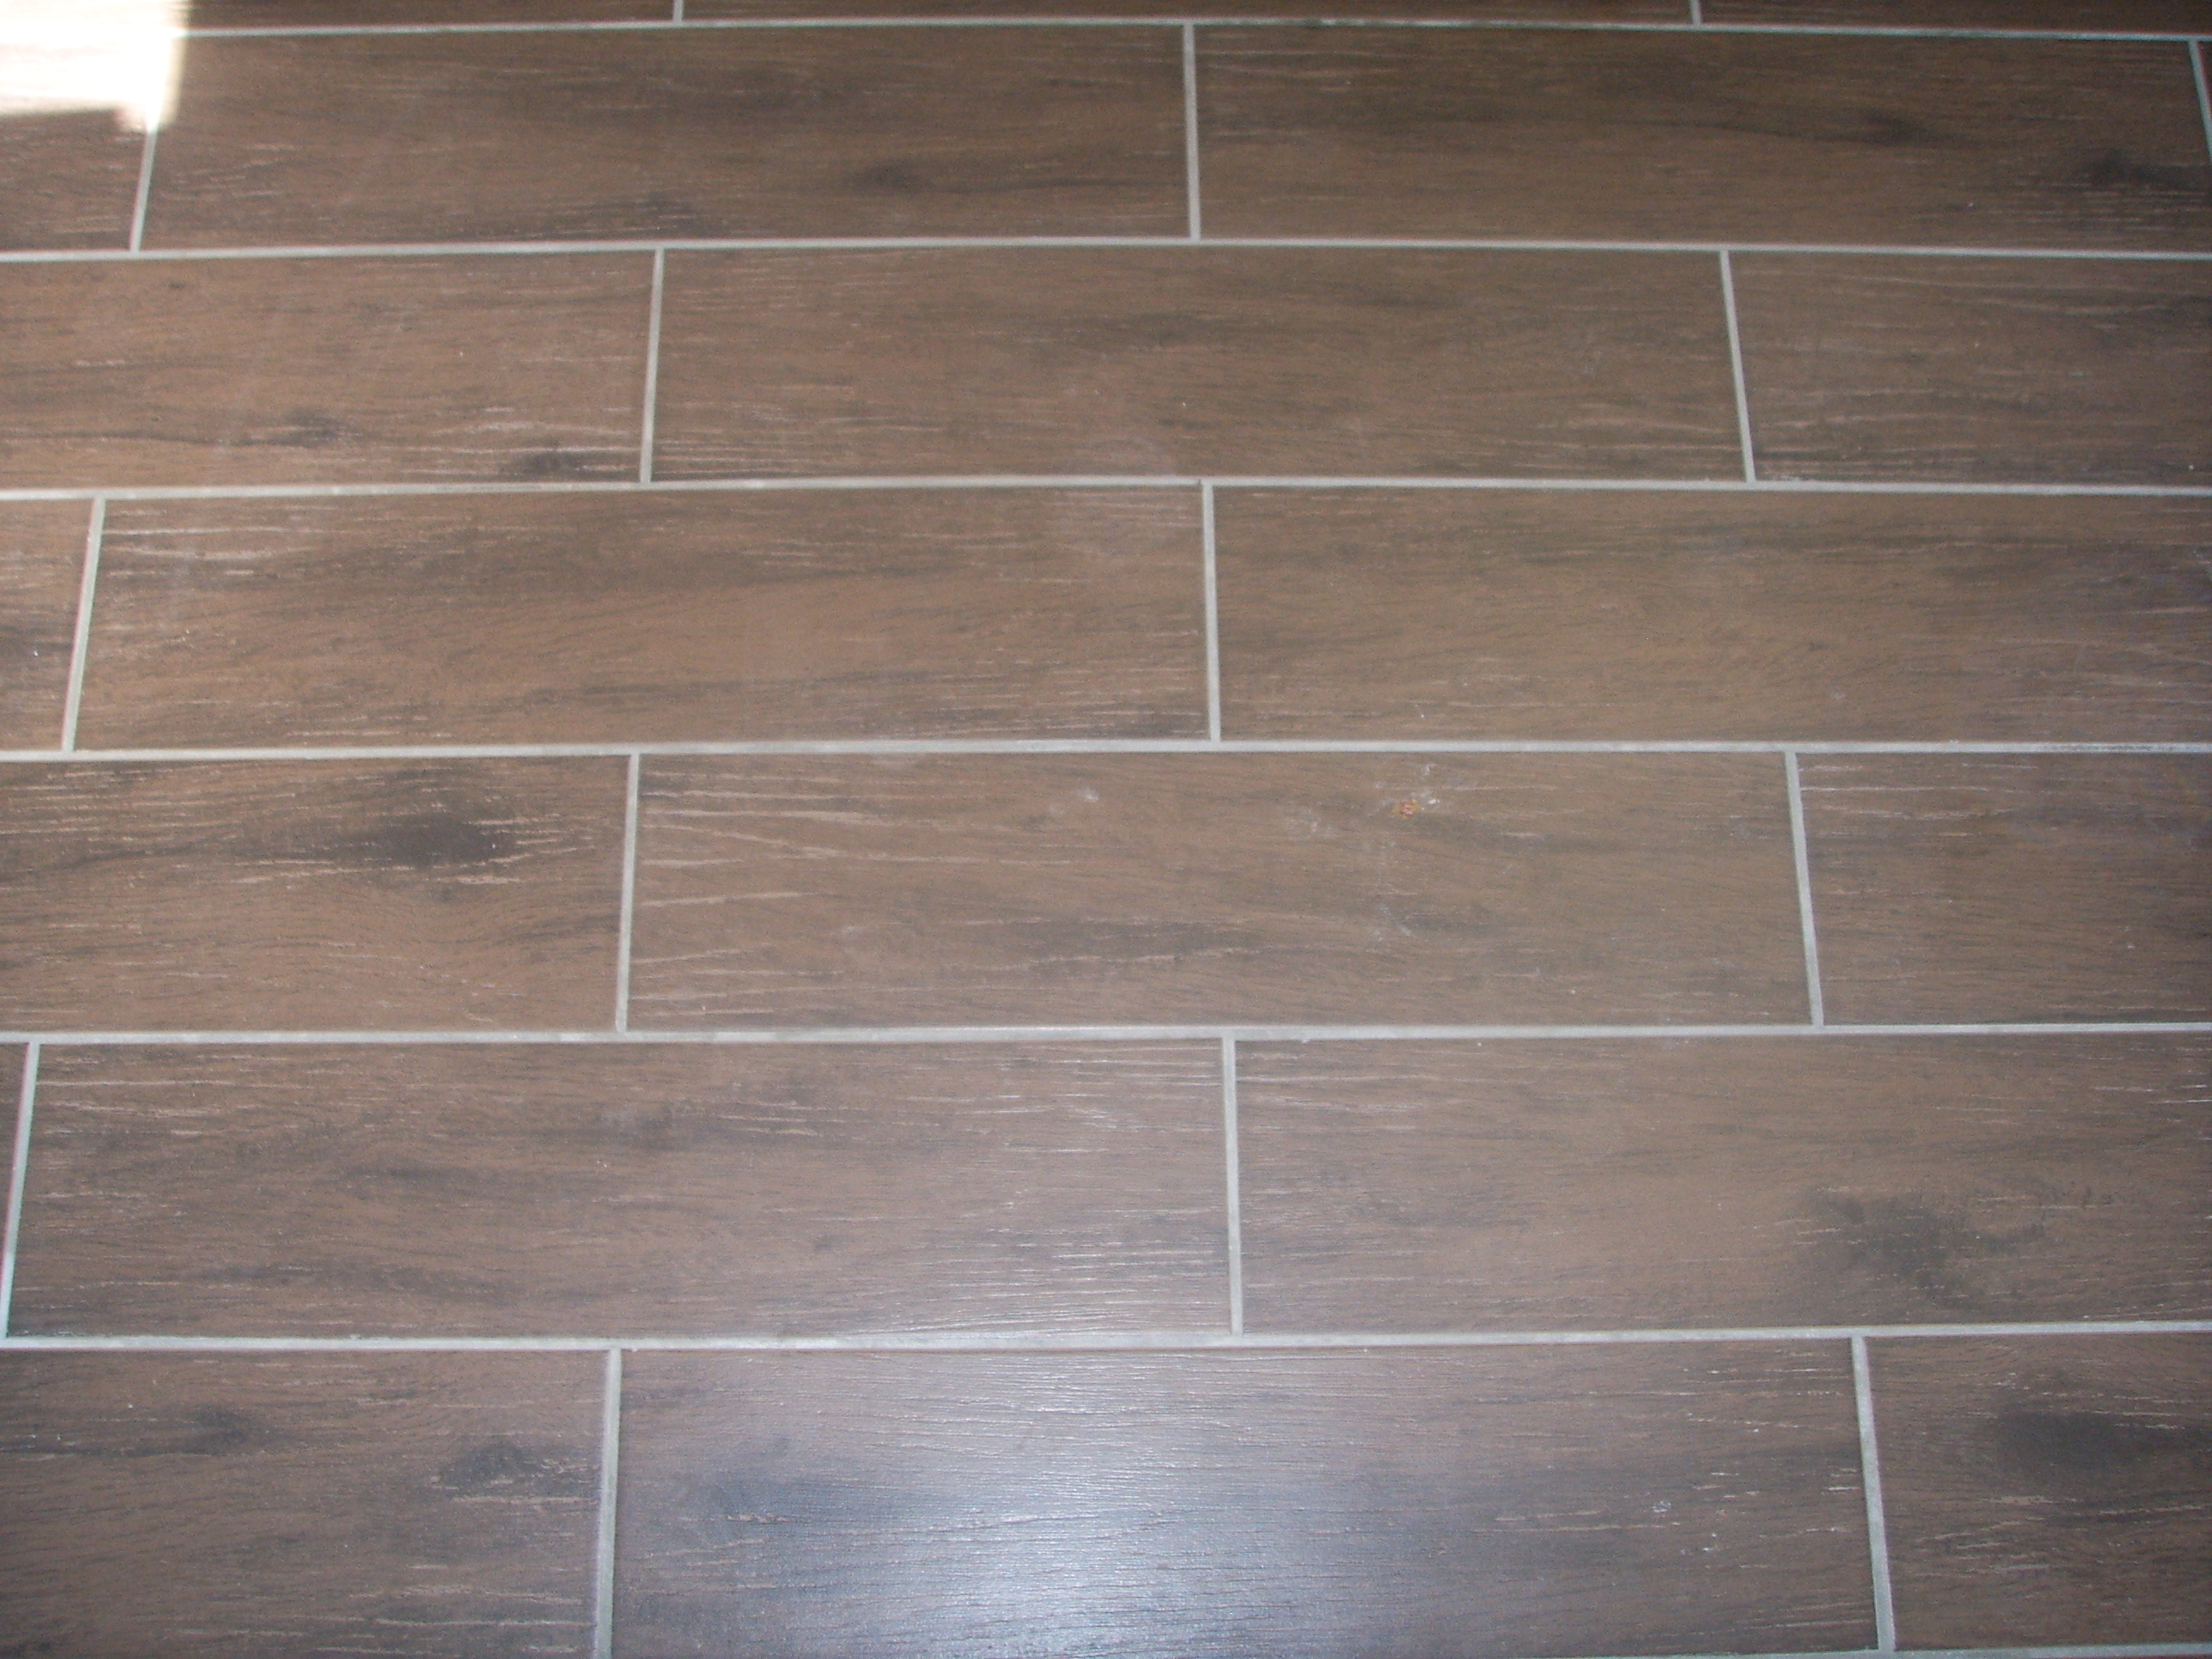 Joint carrelage parquet stratifie devis construction for Poncer parquet flottant